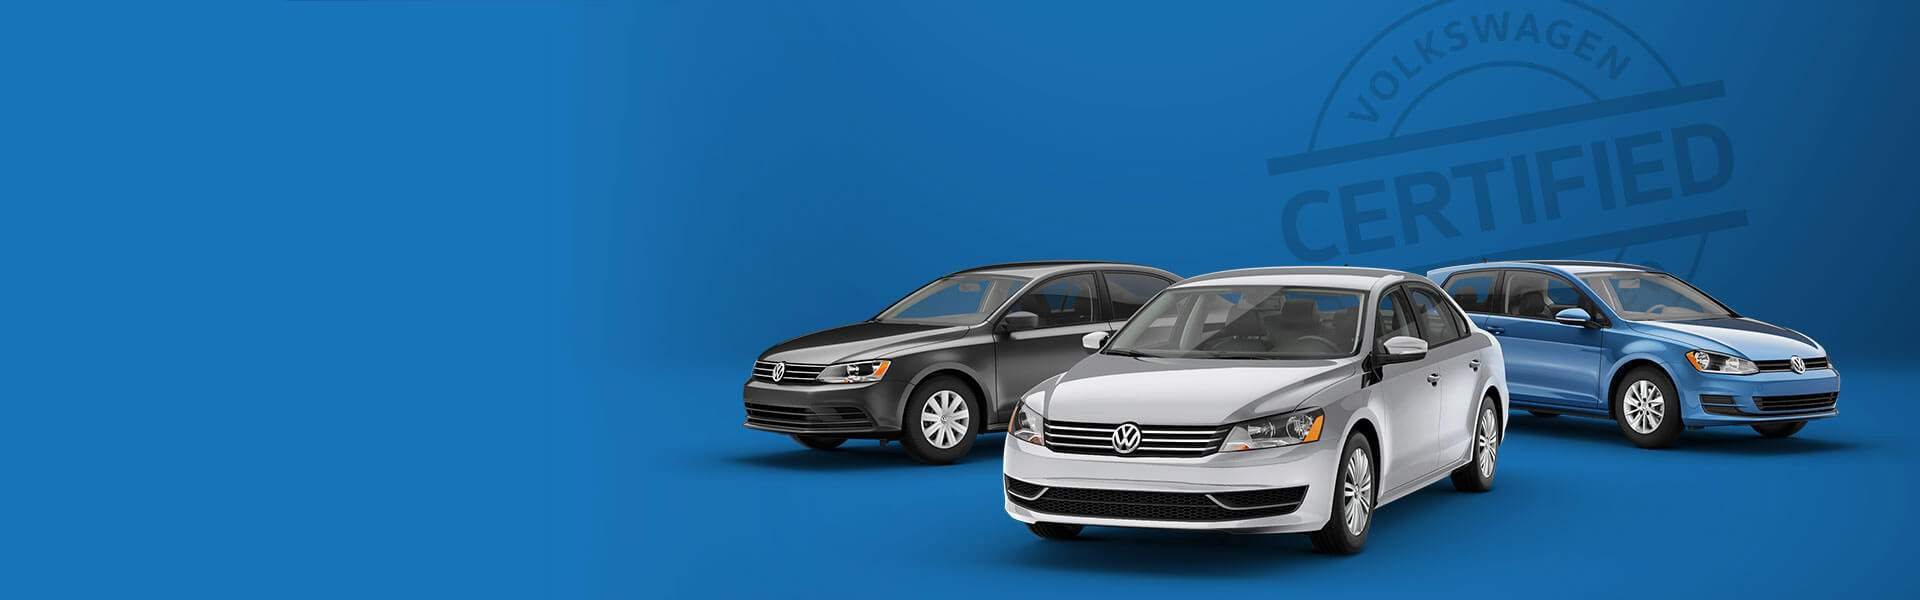 Volkswagen Certified Pre-Owned in Barre, VT